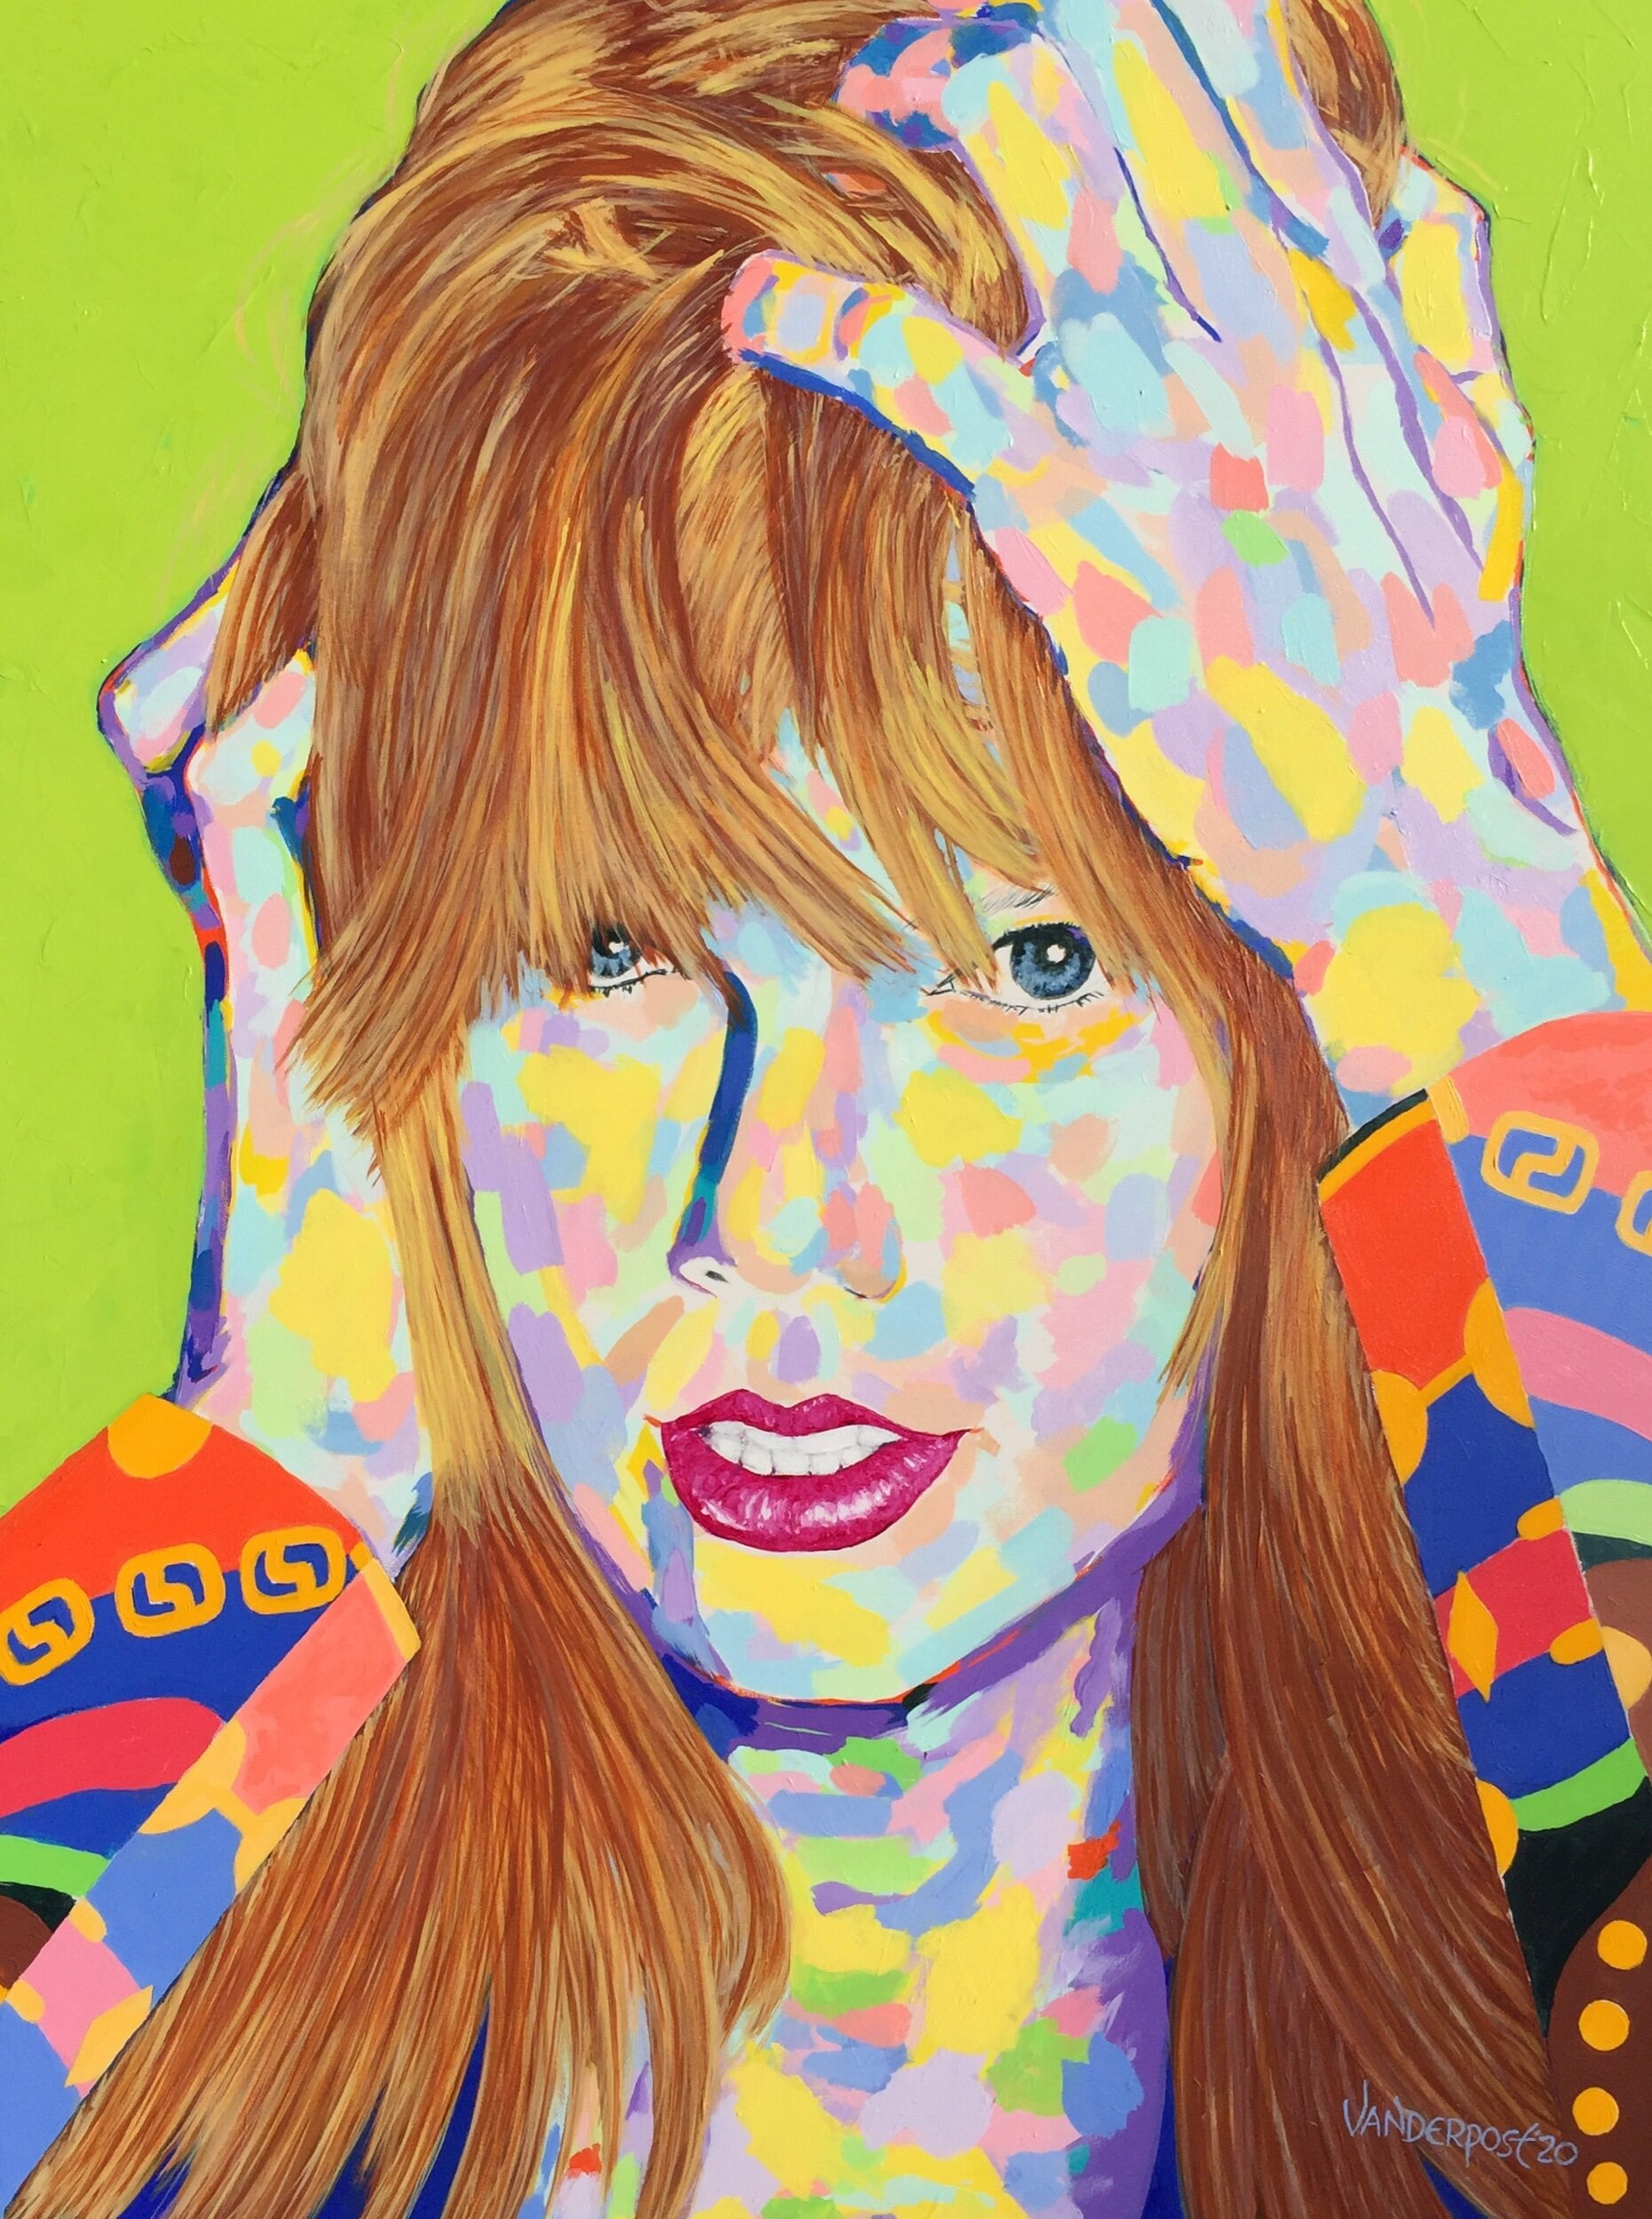 Taylor Swift In Body Paint Phil Vanderpost